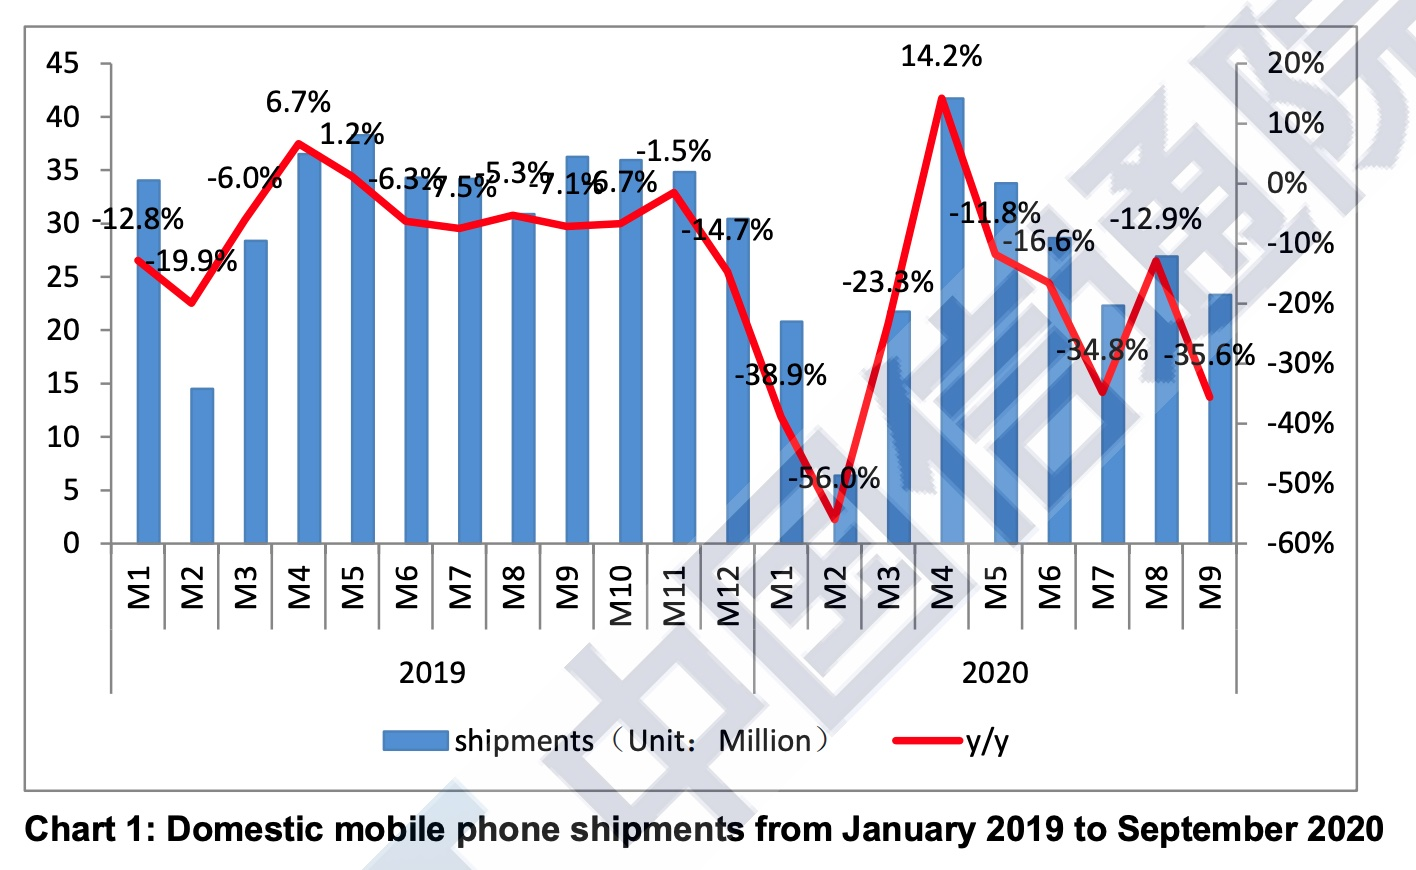 China's mobile phone shipments down 35.6% yoy in Sept to 23.3 million units-CnTechPost